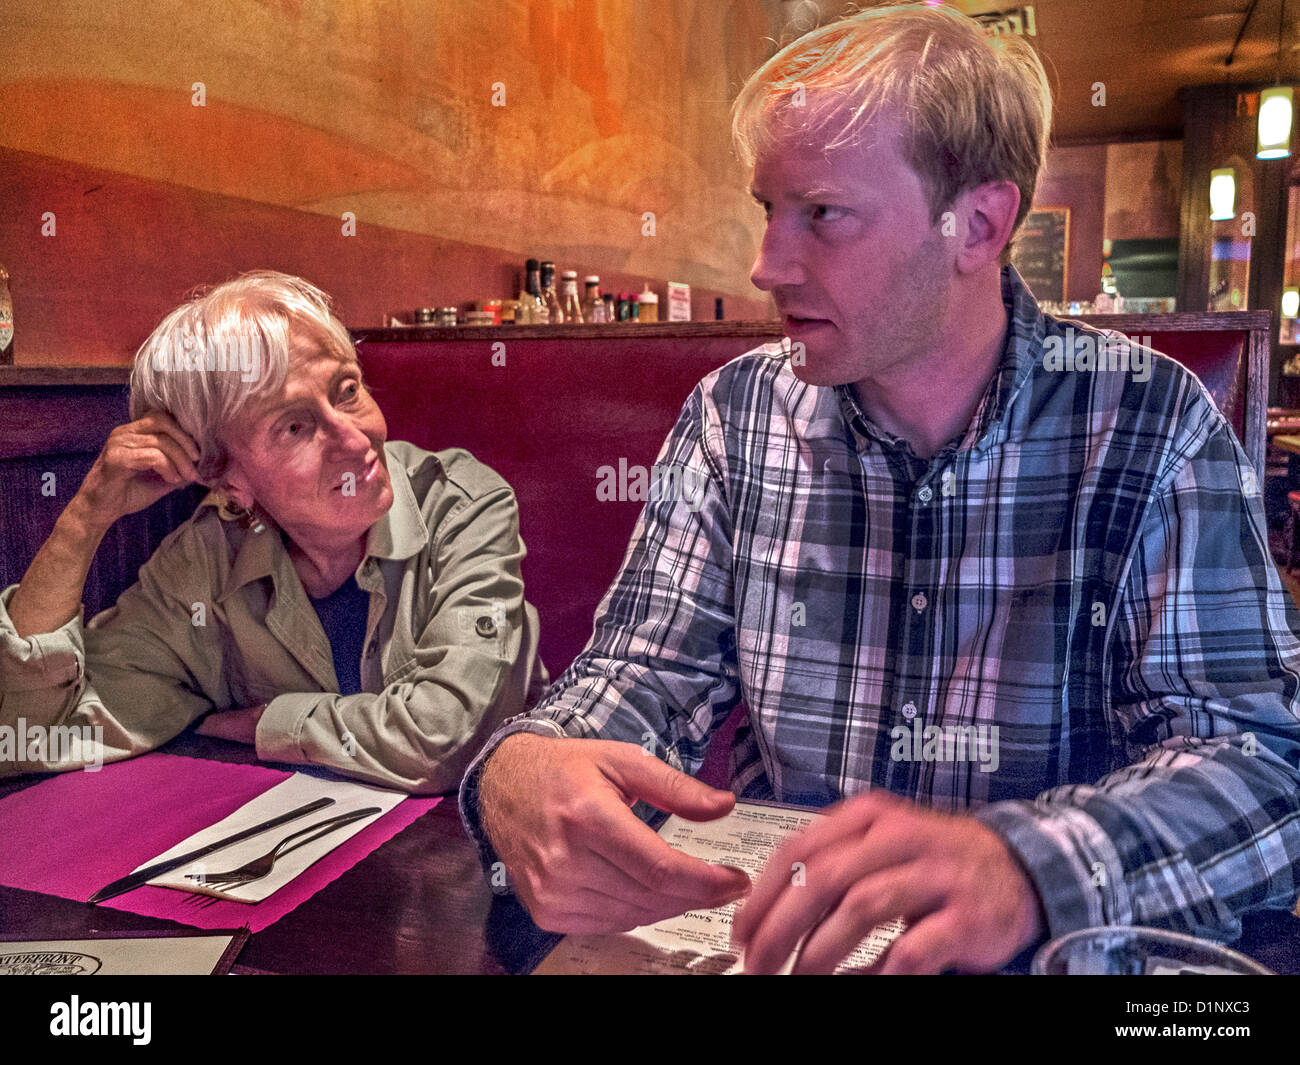 An older woman exemplifies the 'cougar,' a woman who favors a much younger man in Brooklyn, New York, restaurant. - Stock Image